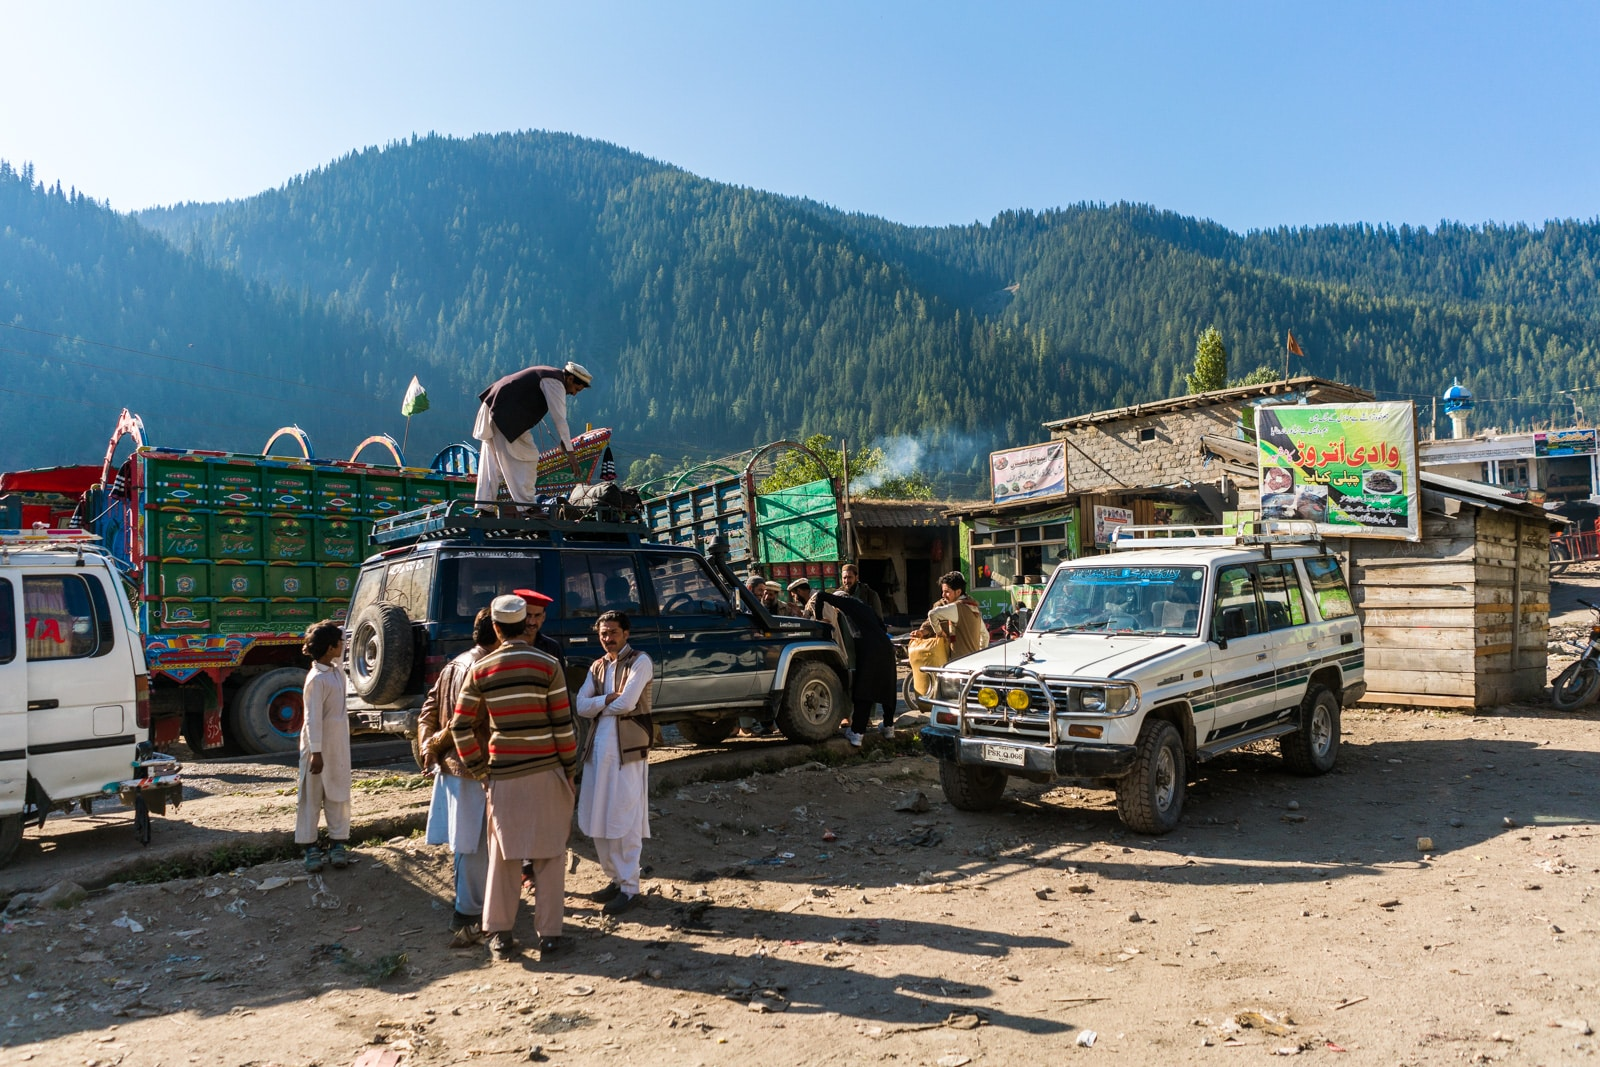 Jeeps from Swat Valley to Kumrat Valley - Lost With Purpose travel blog